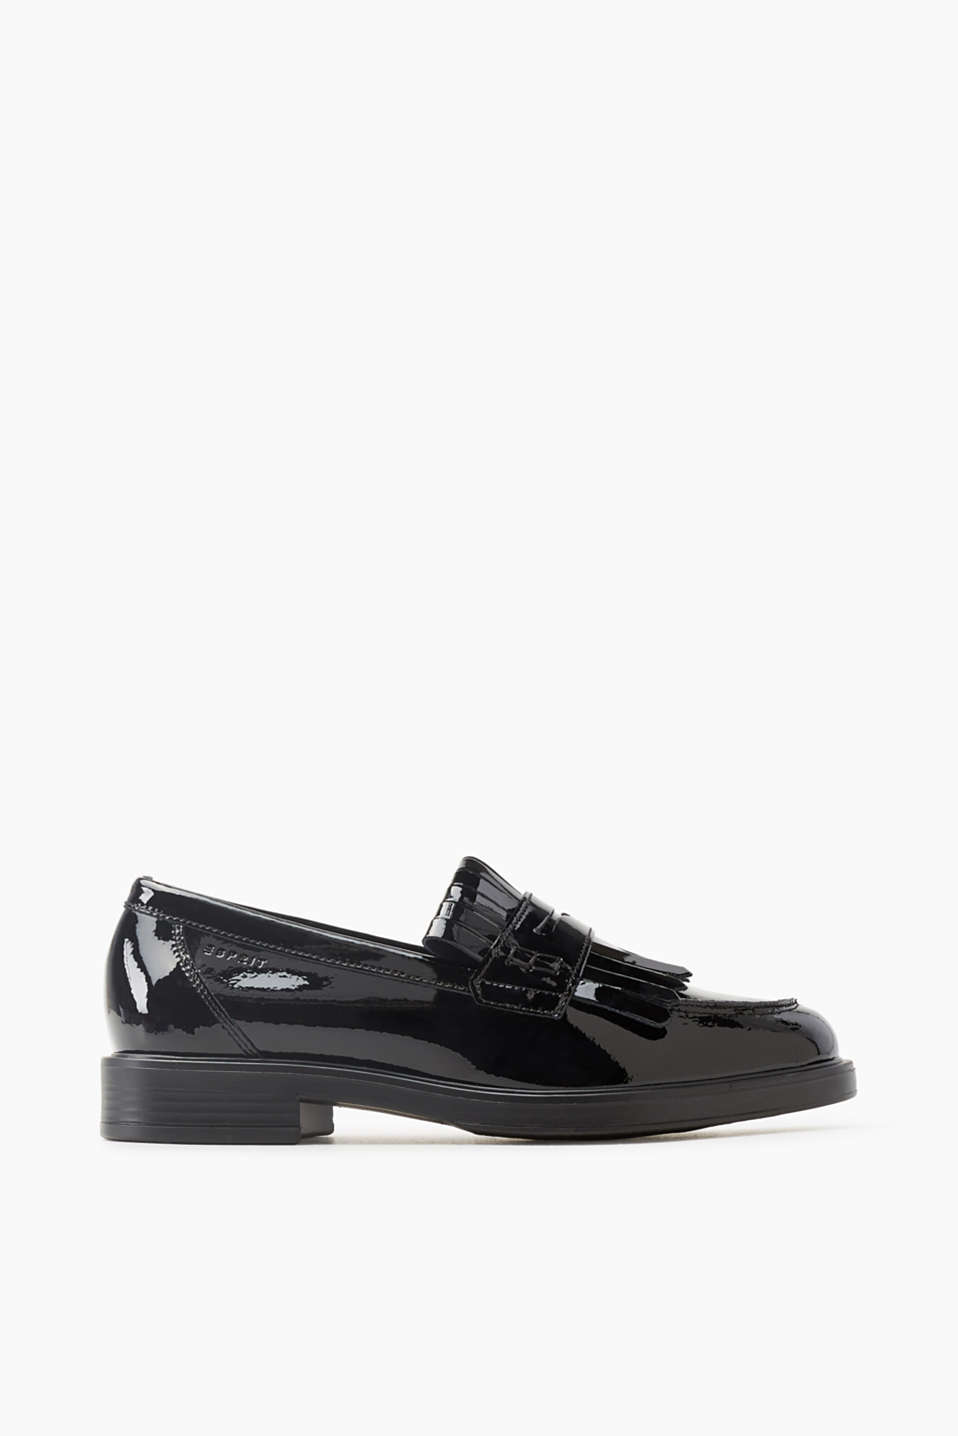 An it piece with classic details! These patent leather loafers impress with bold front fringe.